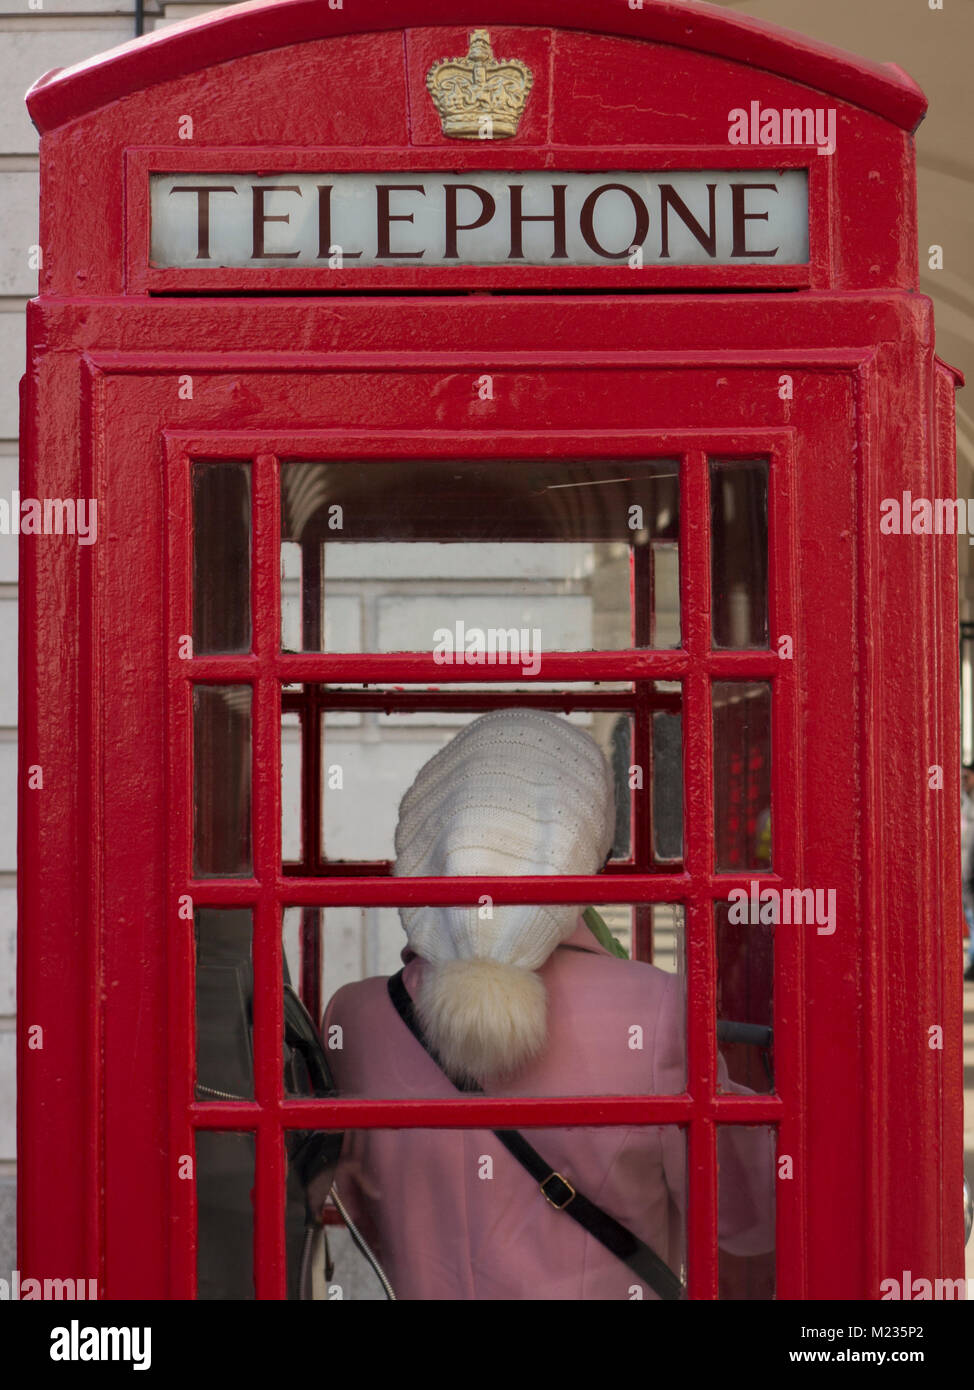 A woman on the phone in a London telephone box wearing a pink coat and a bobble bat - Stock Image